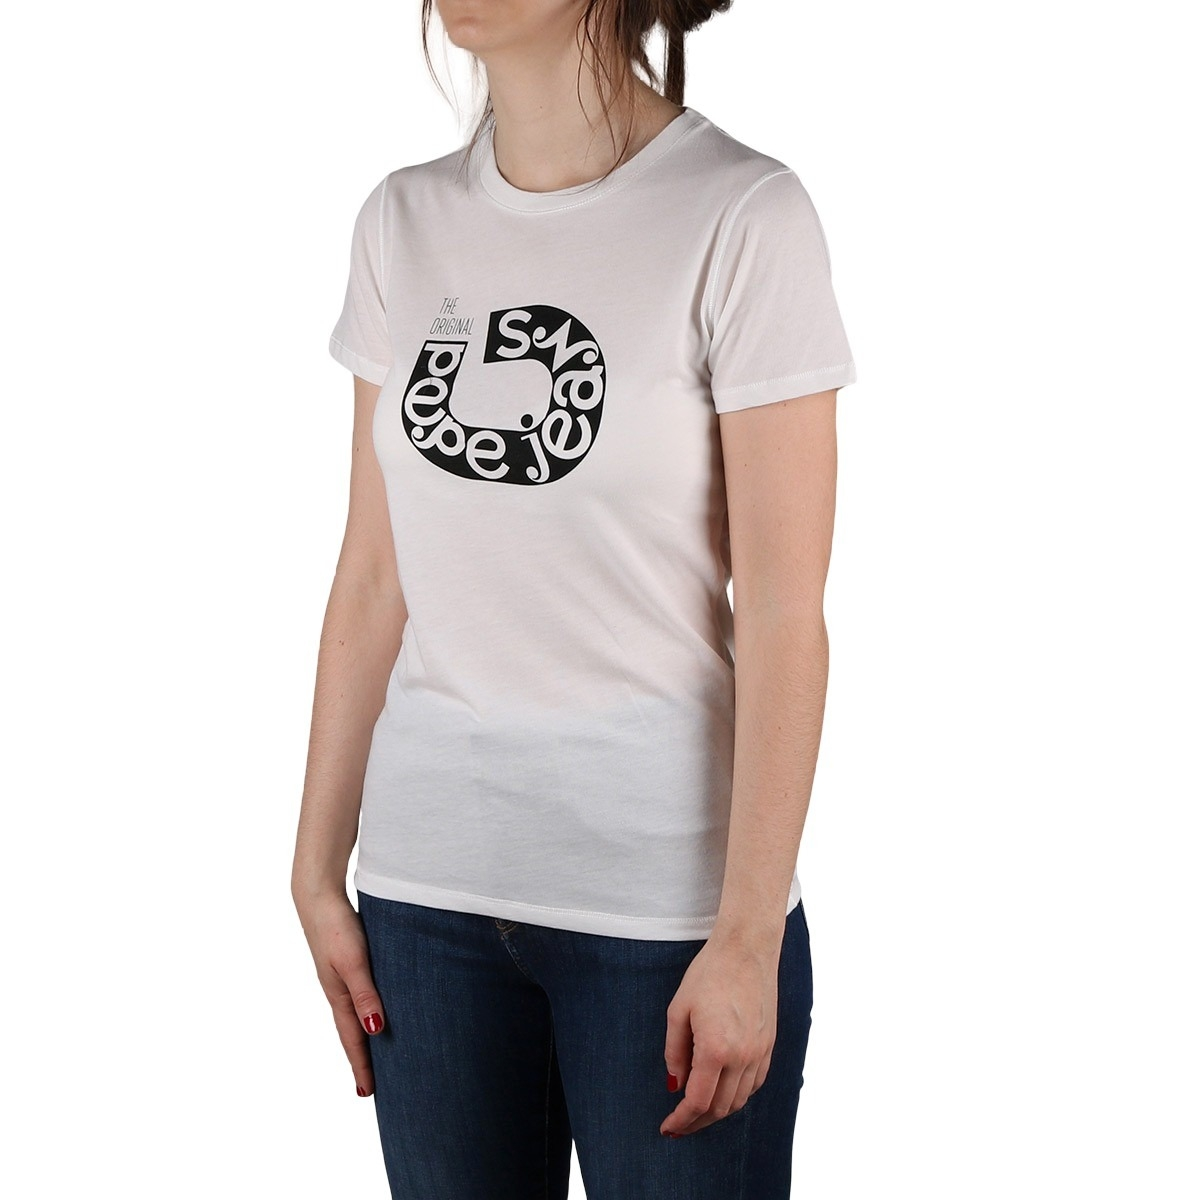 Pepe Jeans Camiseta Cadee Mousse Blanco Mujer